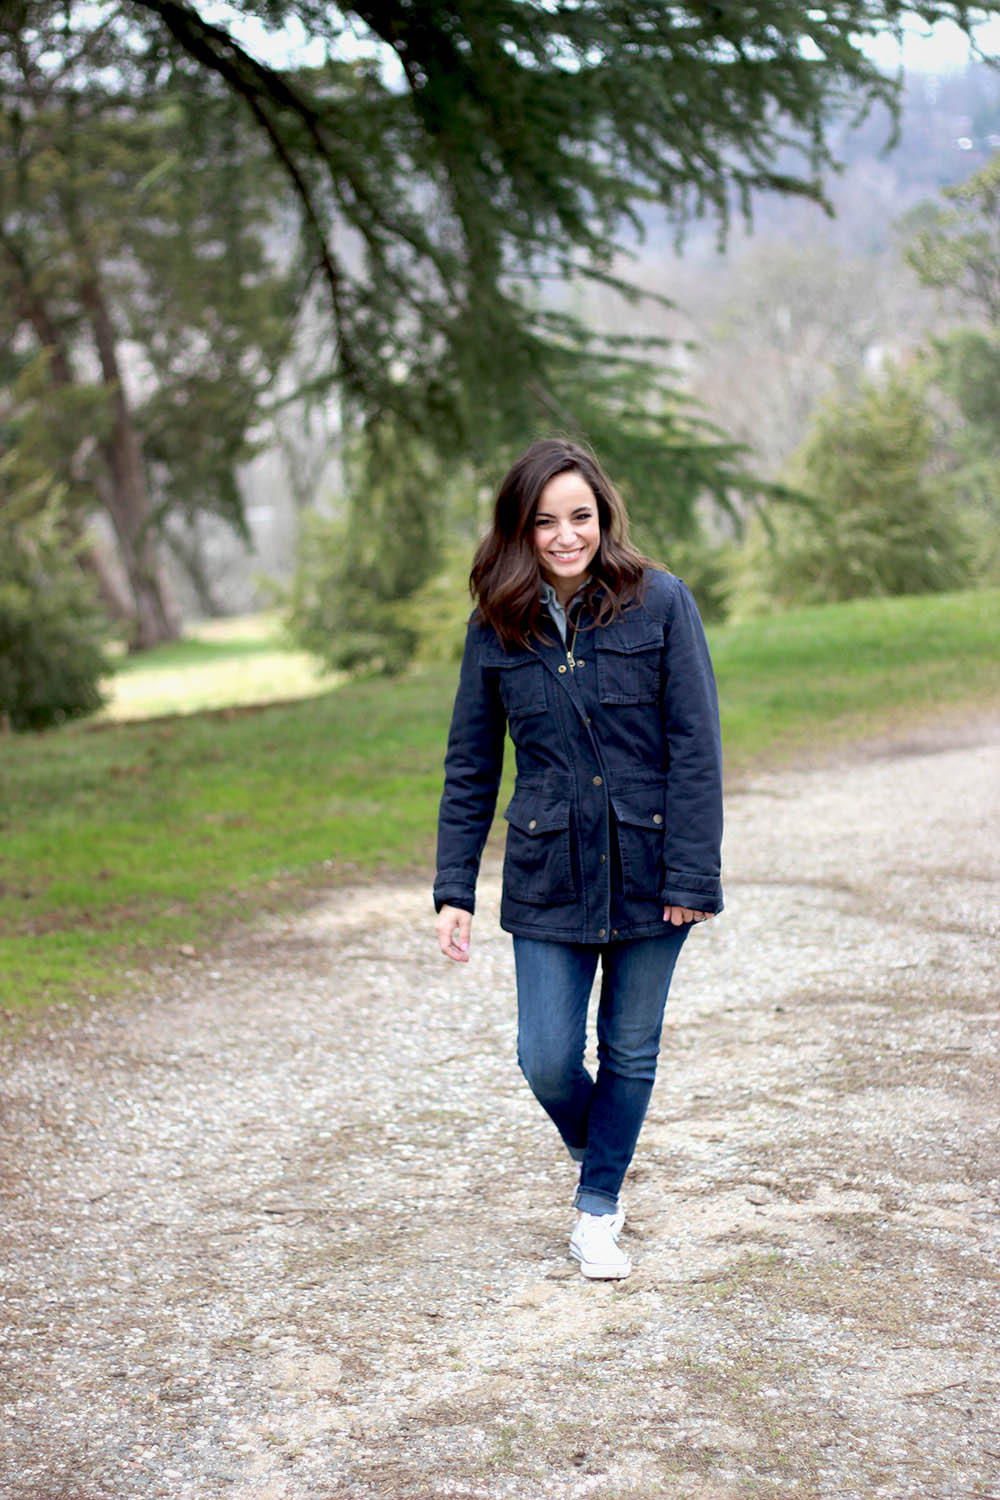 FatFace a UK based clothing line, sent us a few fabulous pieces to compliment a walk through our favorite spot! Brooke is wearing the Eva Four Pocket Jacket (c/o). This jacket is seriously so warm, while still being lightweight, which made it great for a walk through the park.